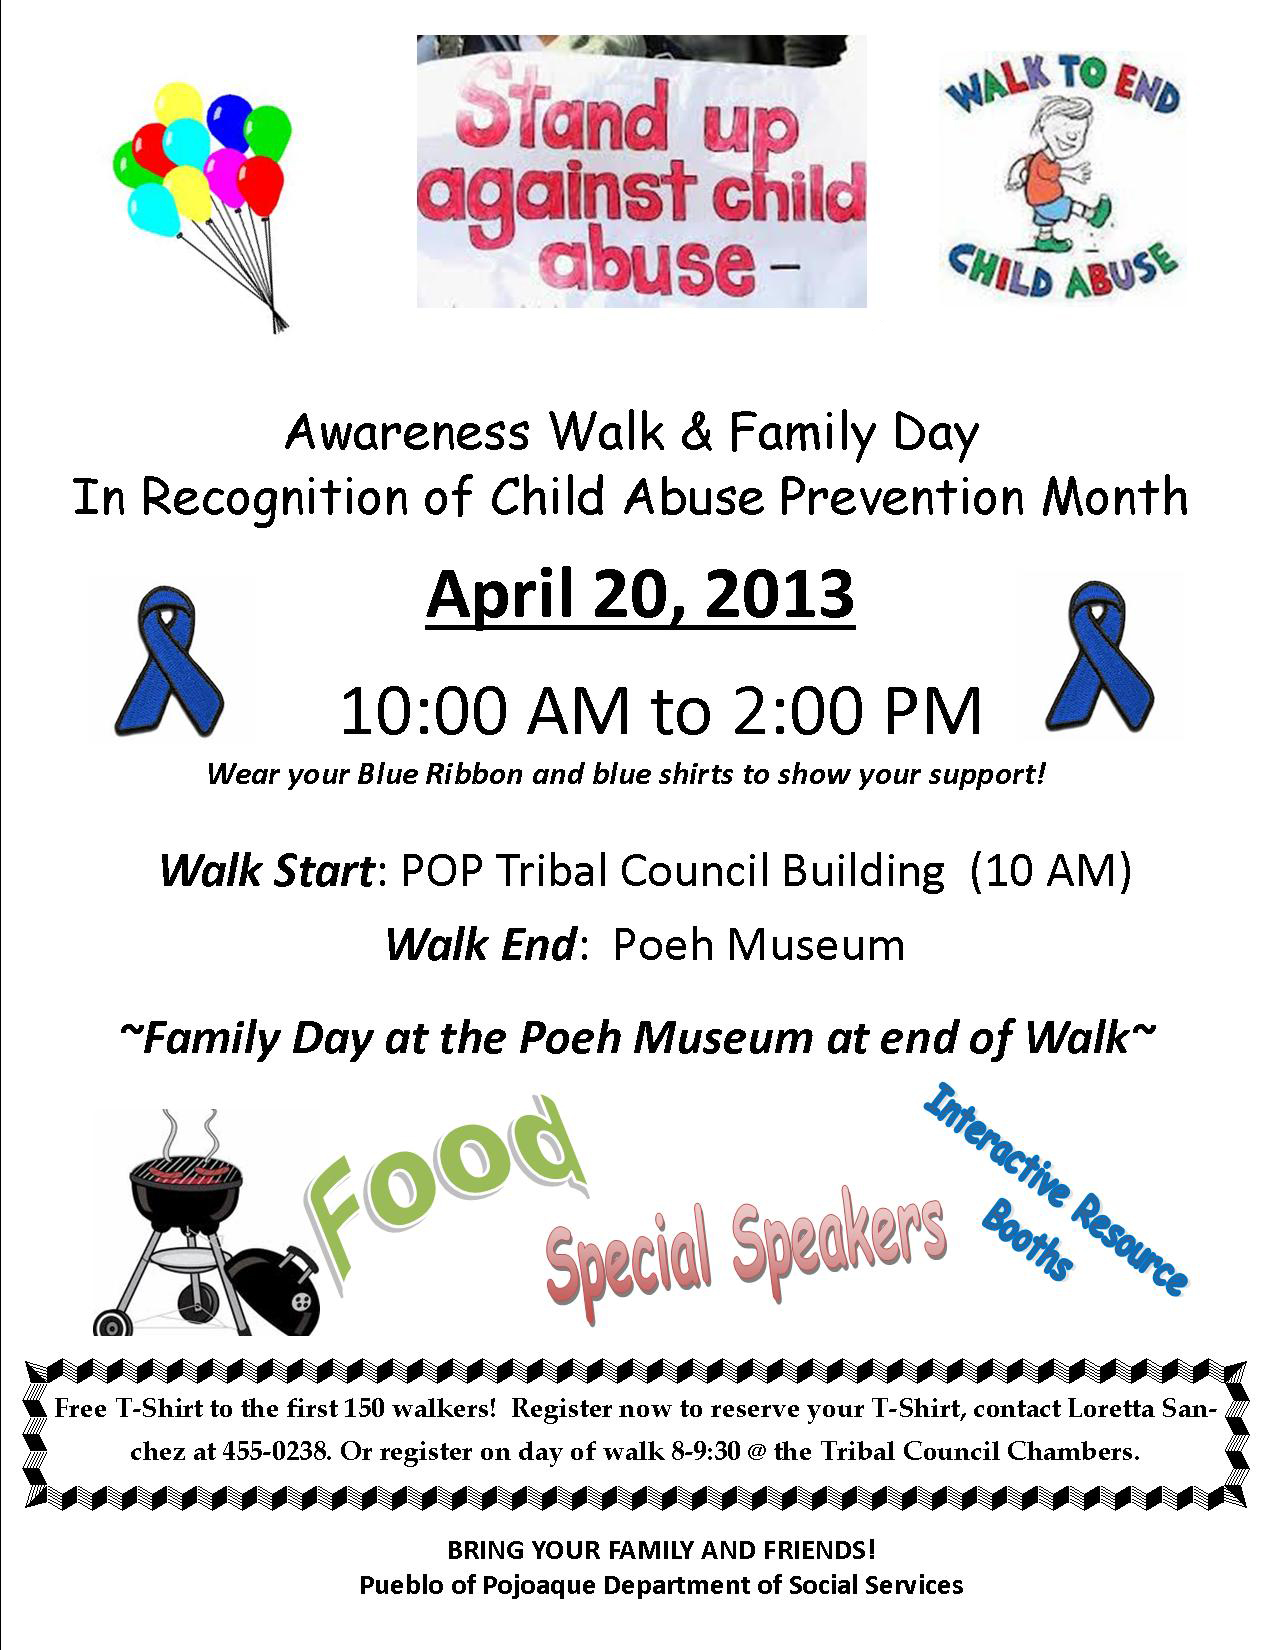 Awareness Walk Family Day 04 02 13-1